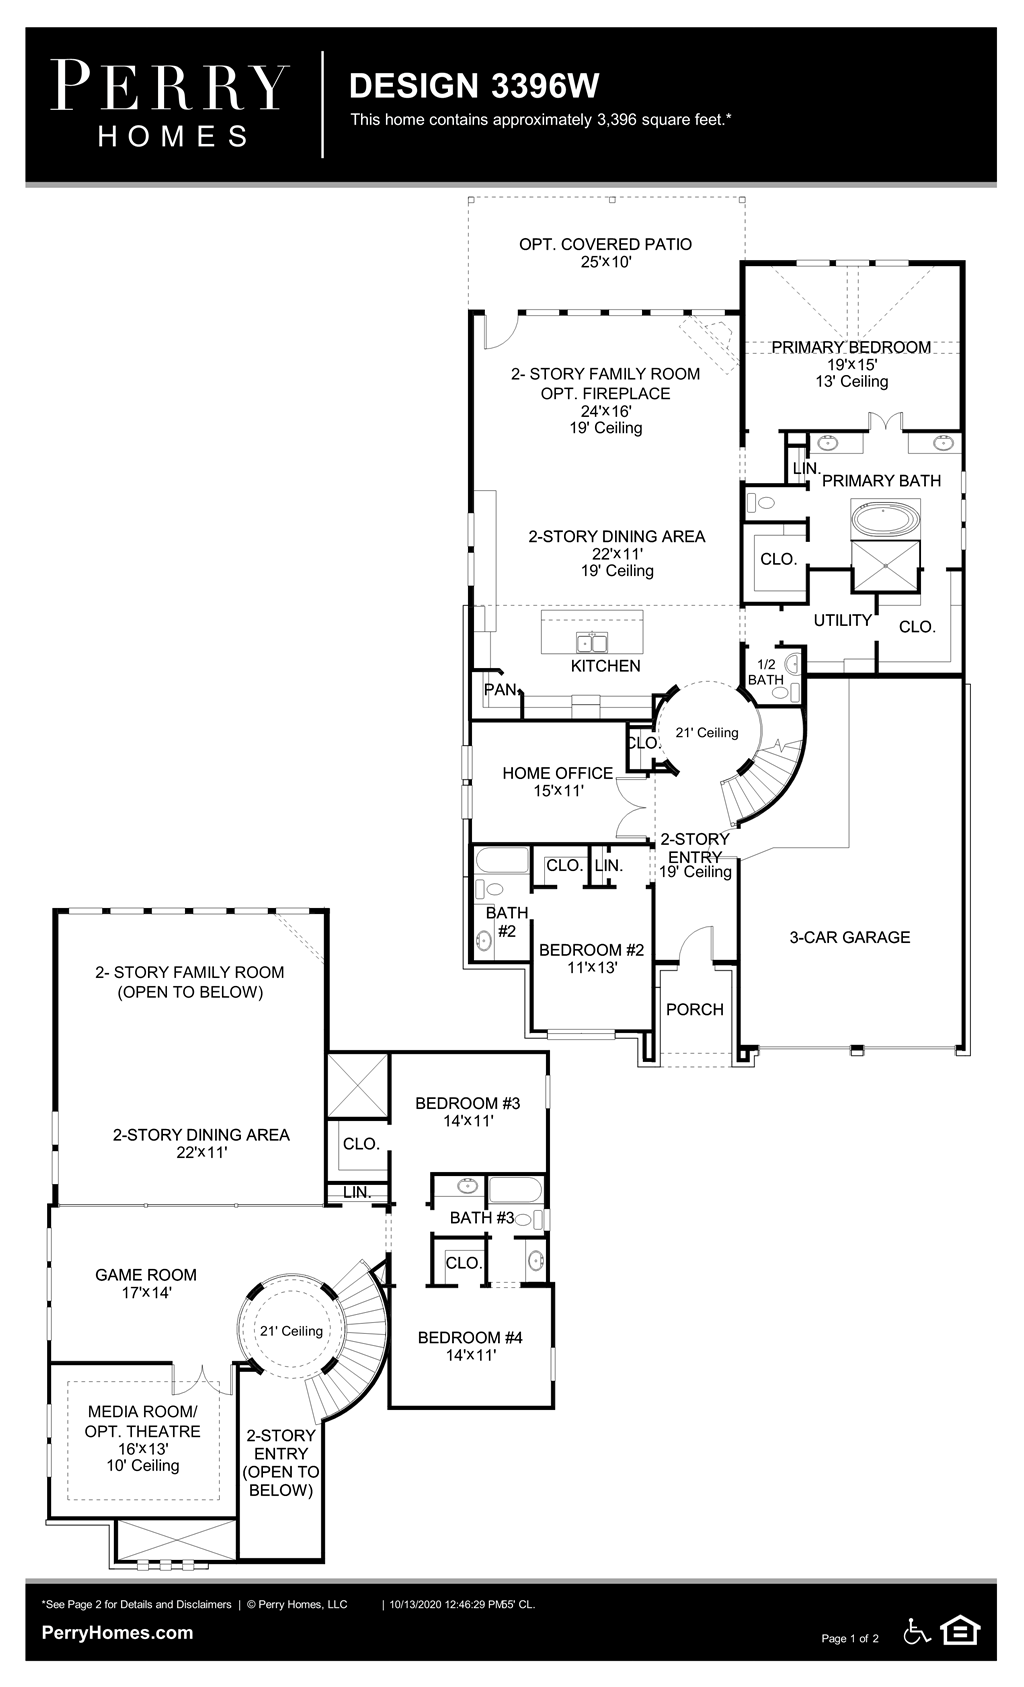 Floor Plan for 3396W